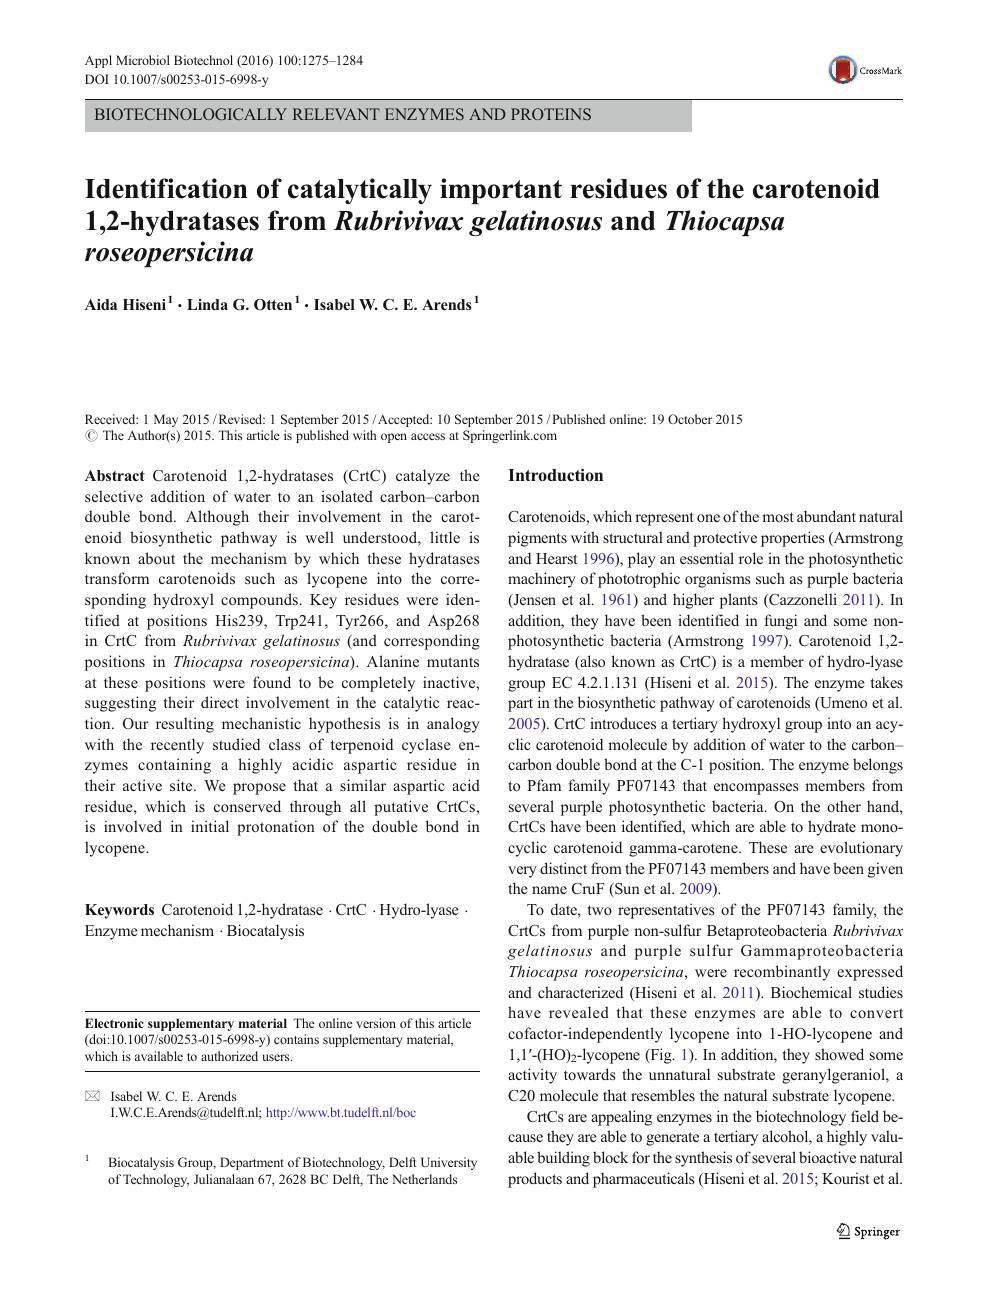 Identification of catalytically important residues of the